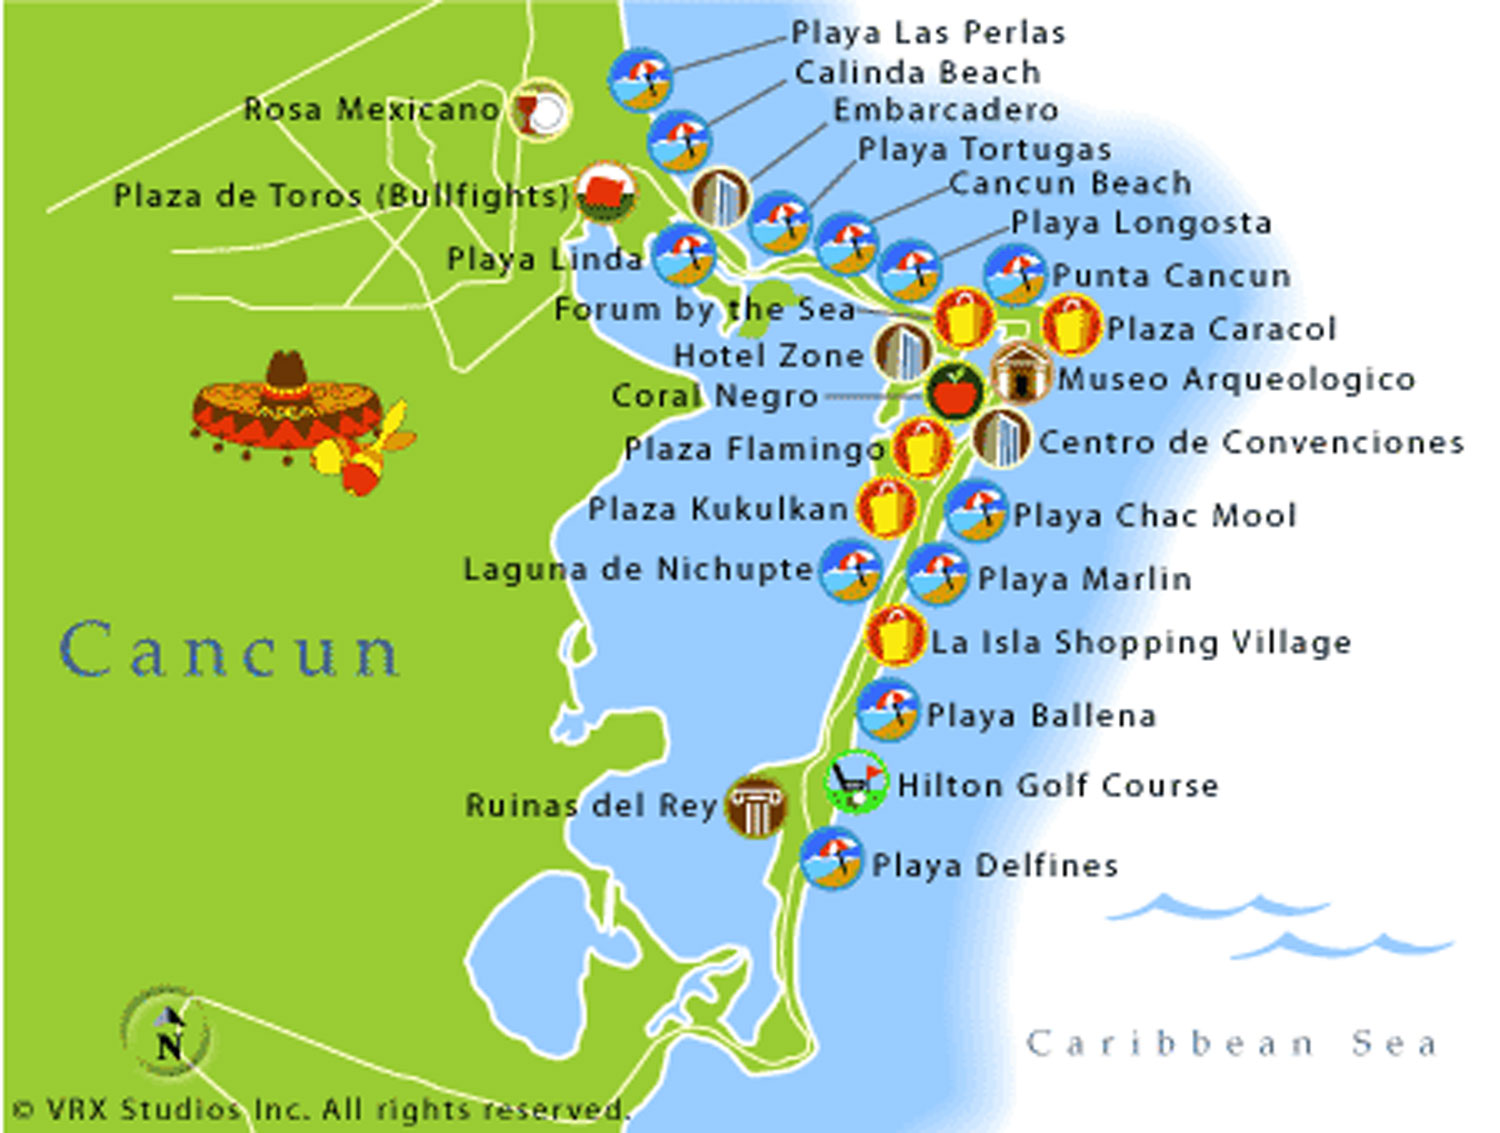 This map shows the beaches of Cancún and the shopping malls across the road.